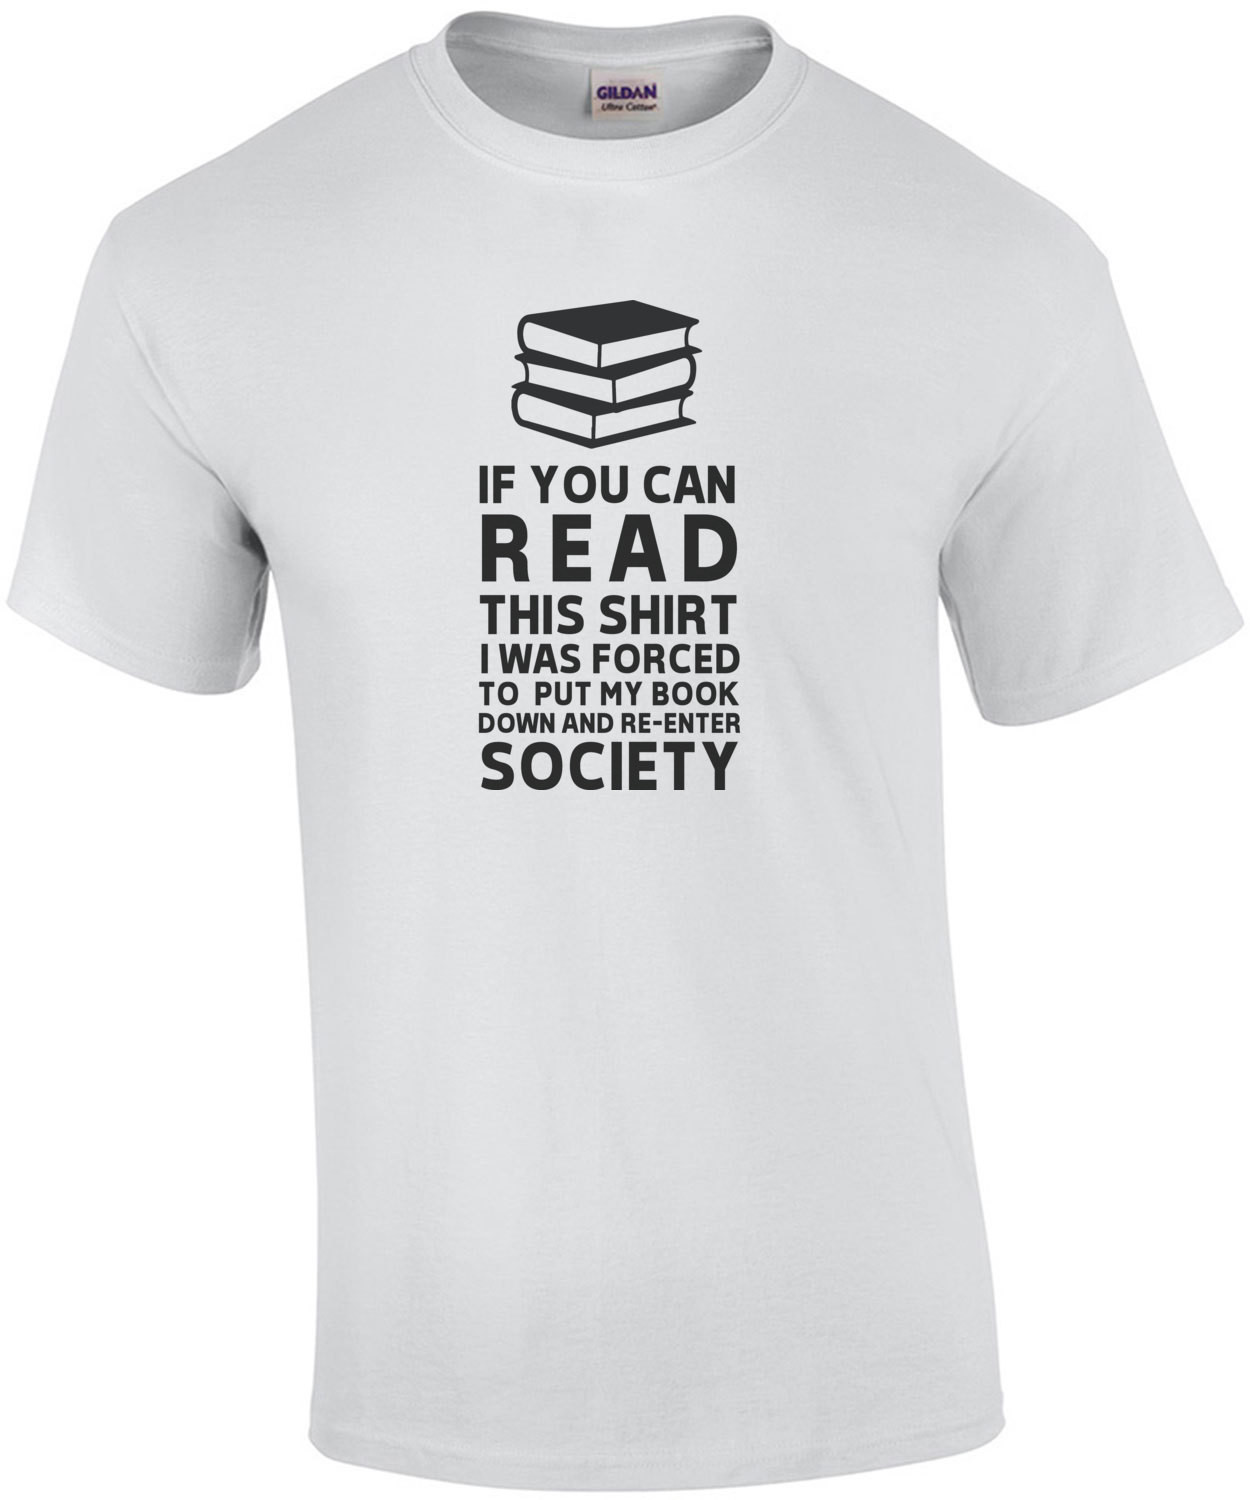 If you can read this I was forced to put my book down and re-enter society - funny book worm - funny reading